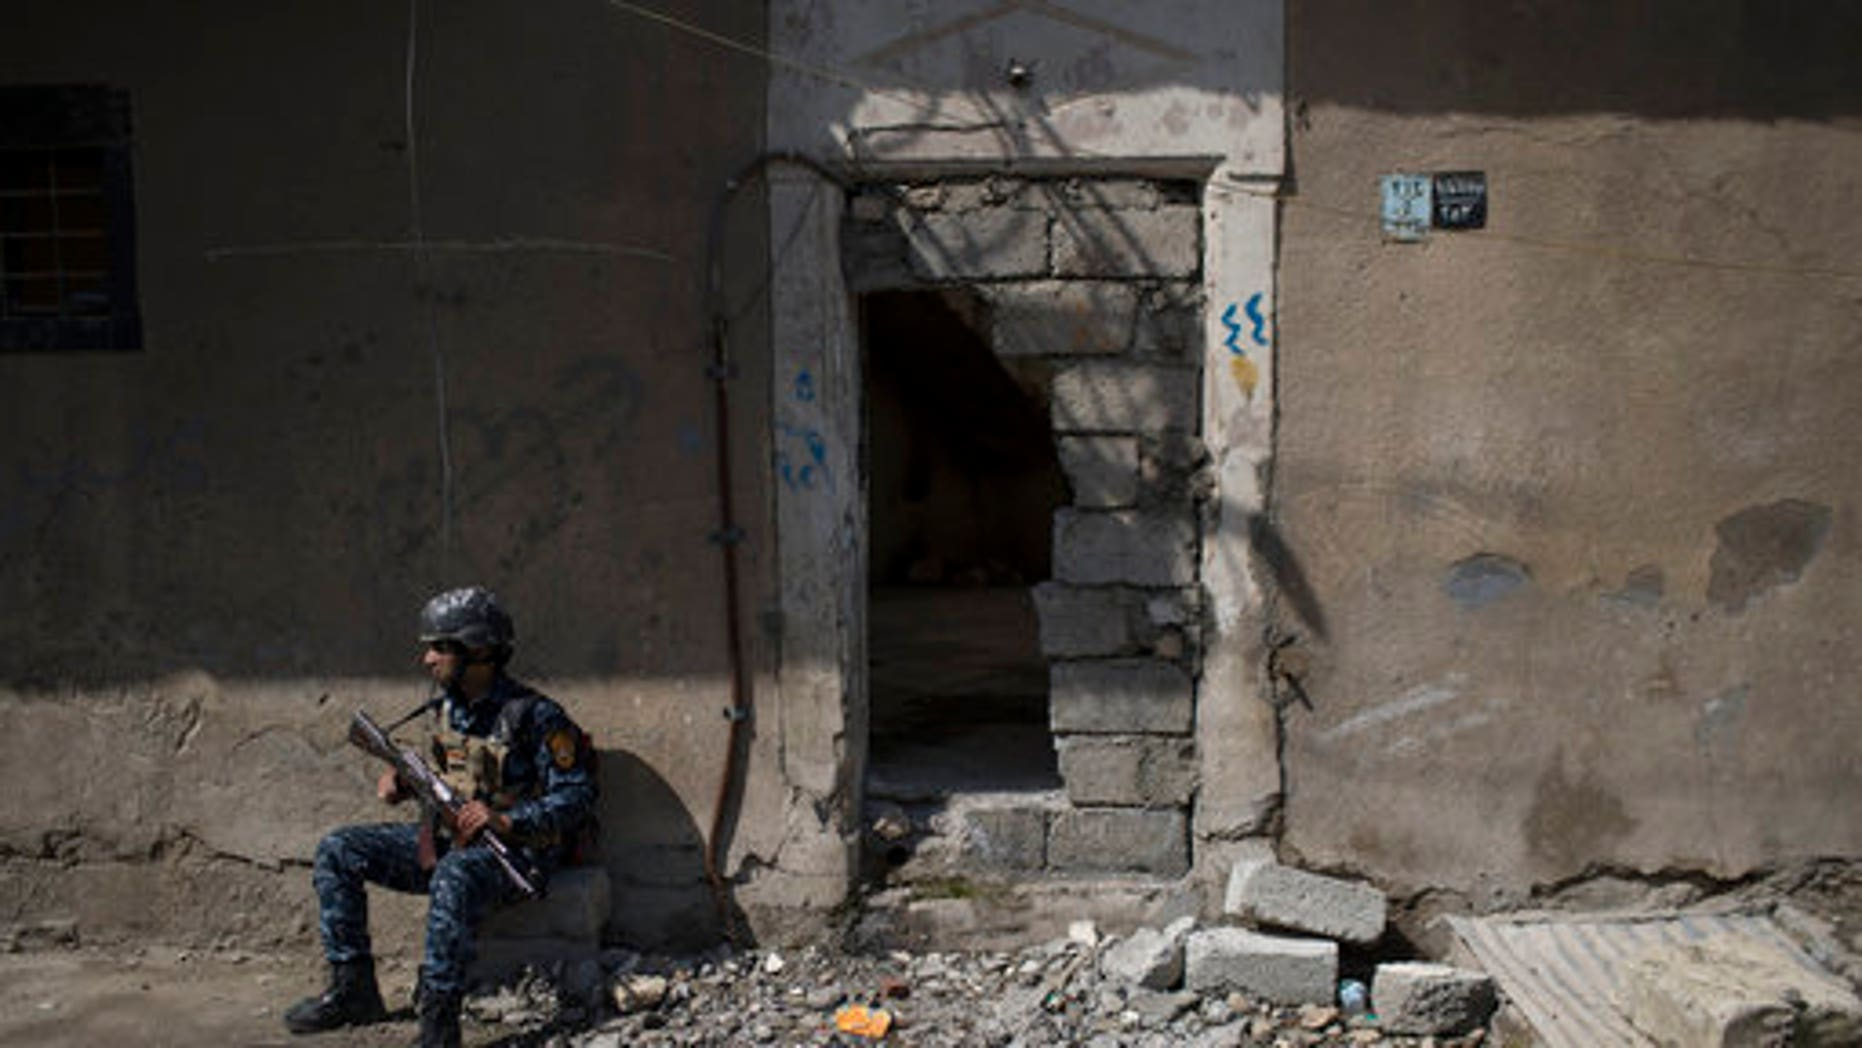 A federal policeman takes a break from inspecting houses during fighting against Islamic State militants on the western side of Mosul on Wednesday.